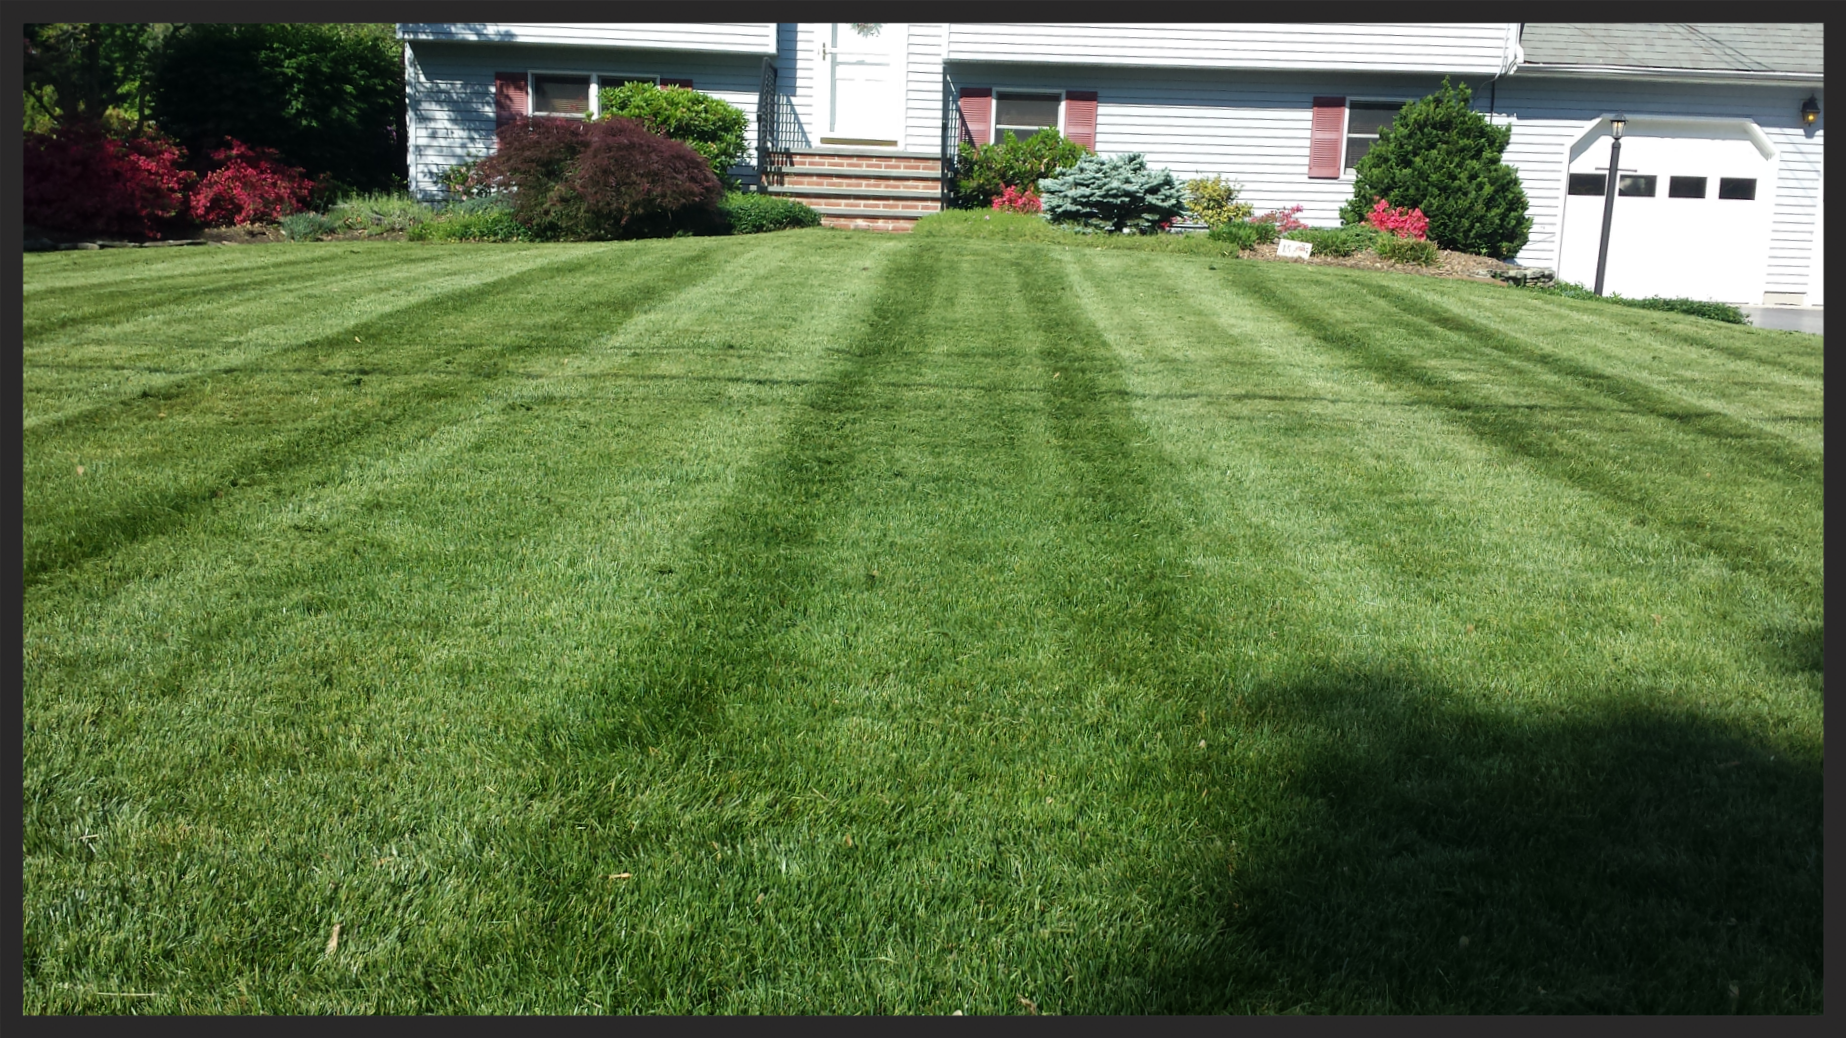 Green lawns require Weed Control and Fertilization. Weekly Mowing services make sure that your lawn is always looking great